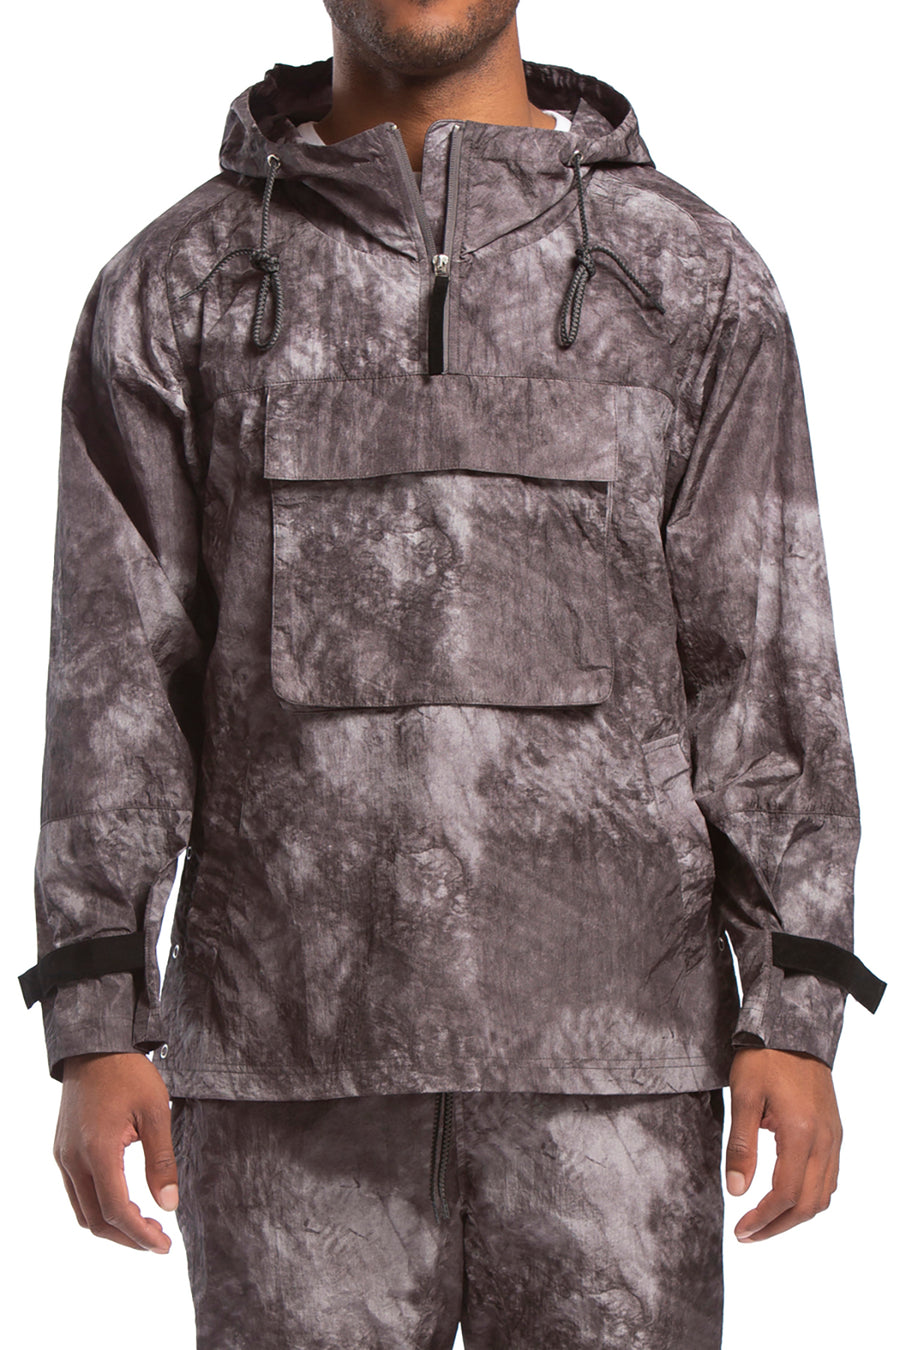 candorofficial - Grath Anorak, Black Shadow Camo - Outerwear